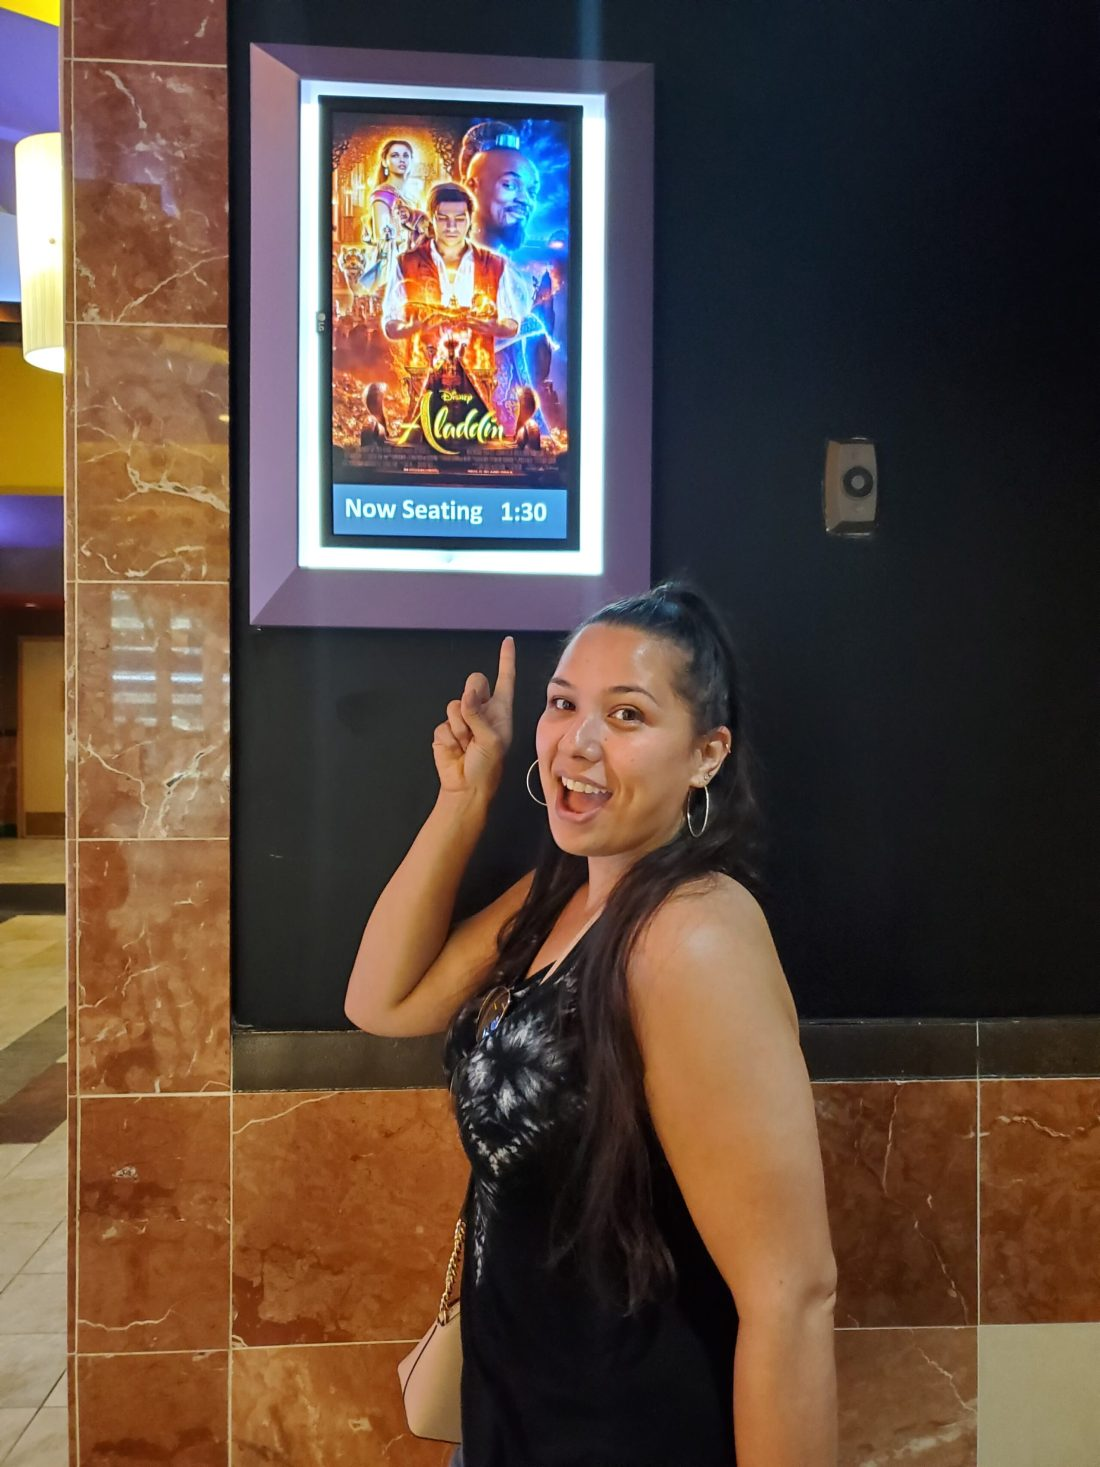 Aladdin Regal Cinema 4DX Jay. Read my full Disneys Live Action Remake of Aladdin Review on my blog. Disney's Aladdin 4DX Experience at Regal Cinemas - A Whole New World For The Younger Generation | Fangirl Review - Spoiler Alert!